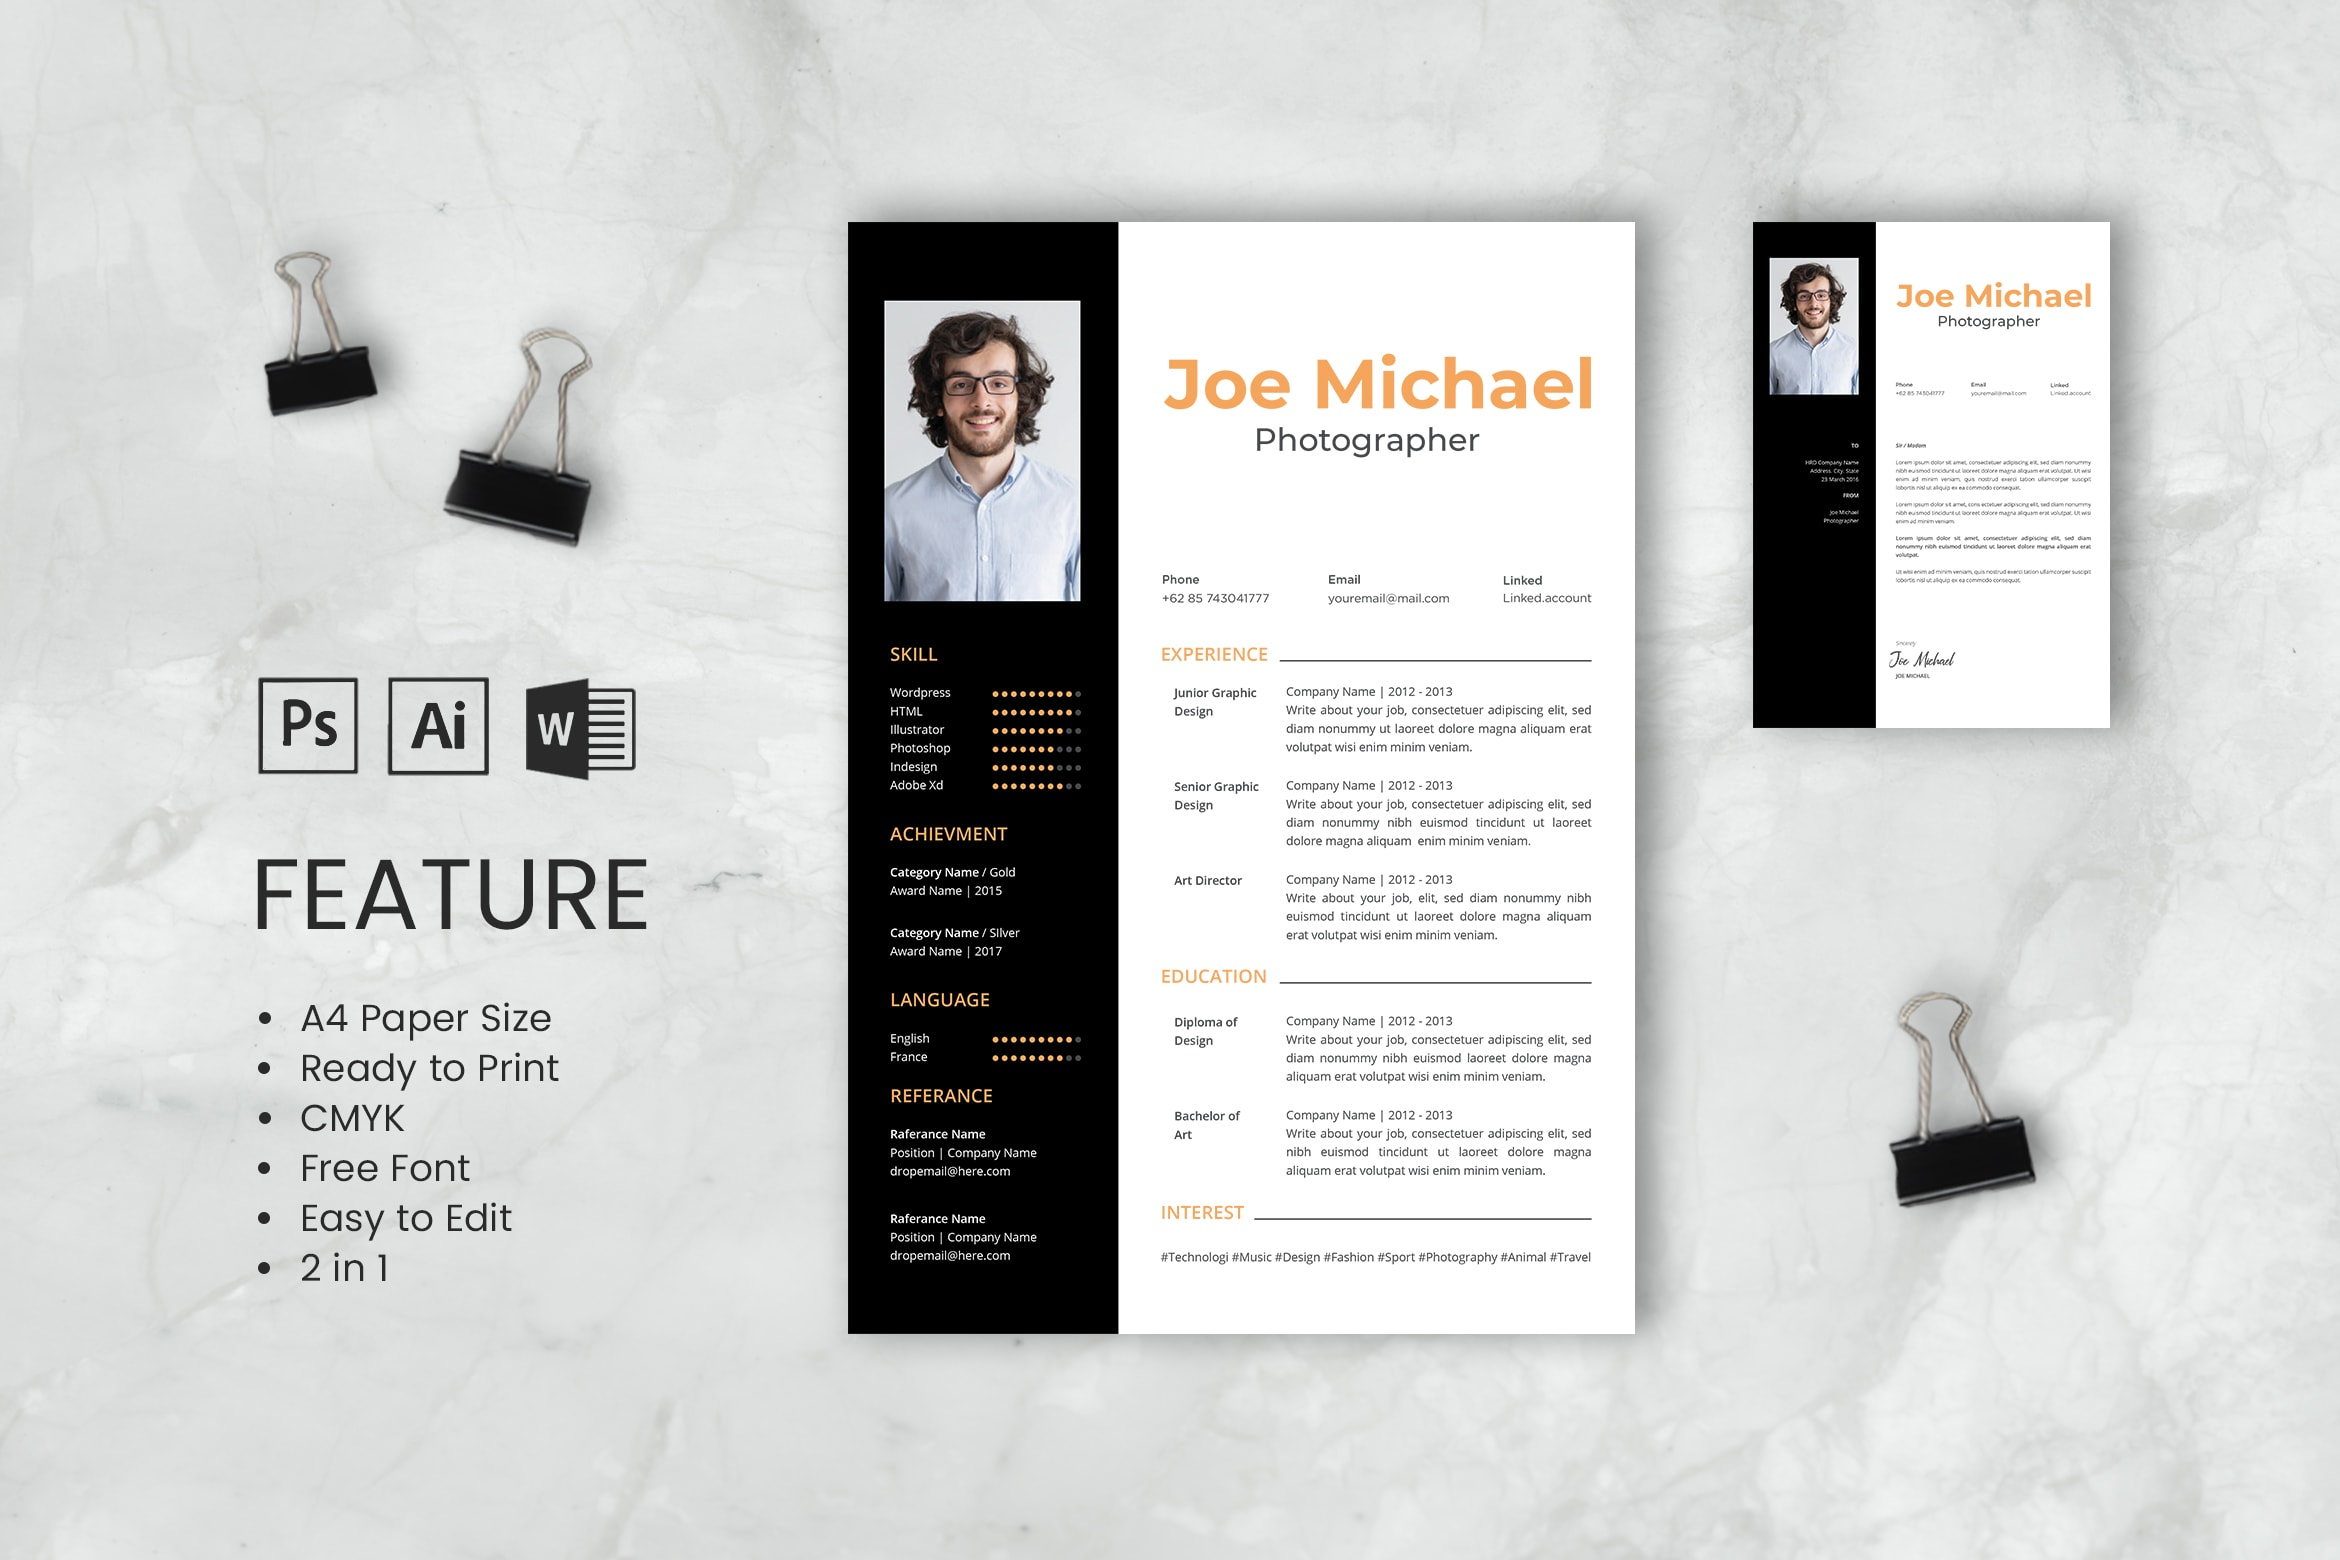 CV Resume – Photographer Profile 6